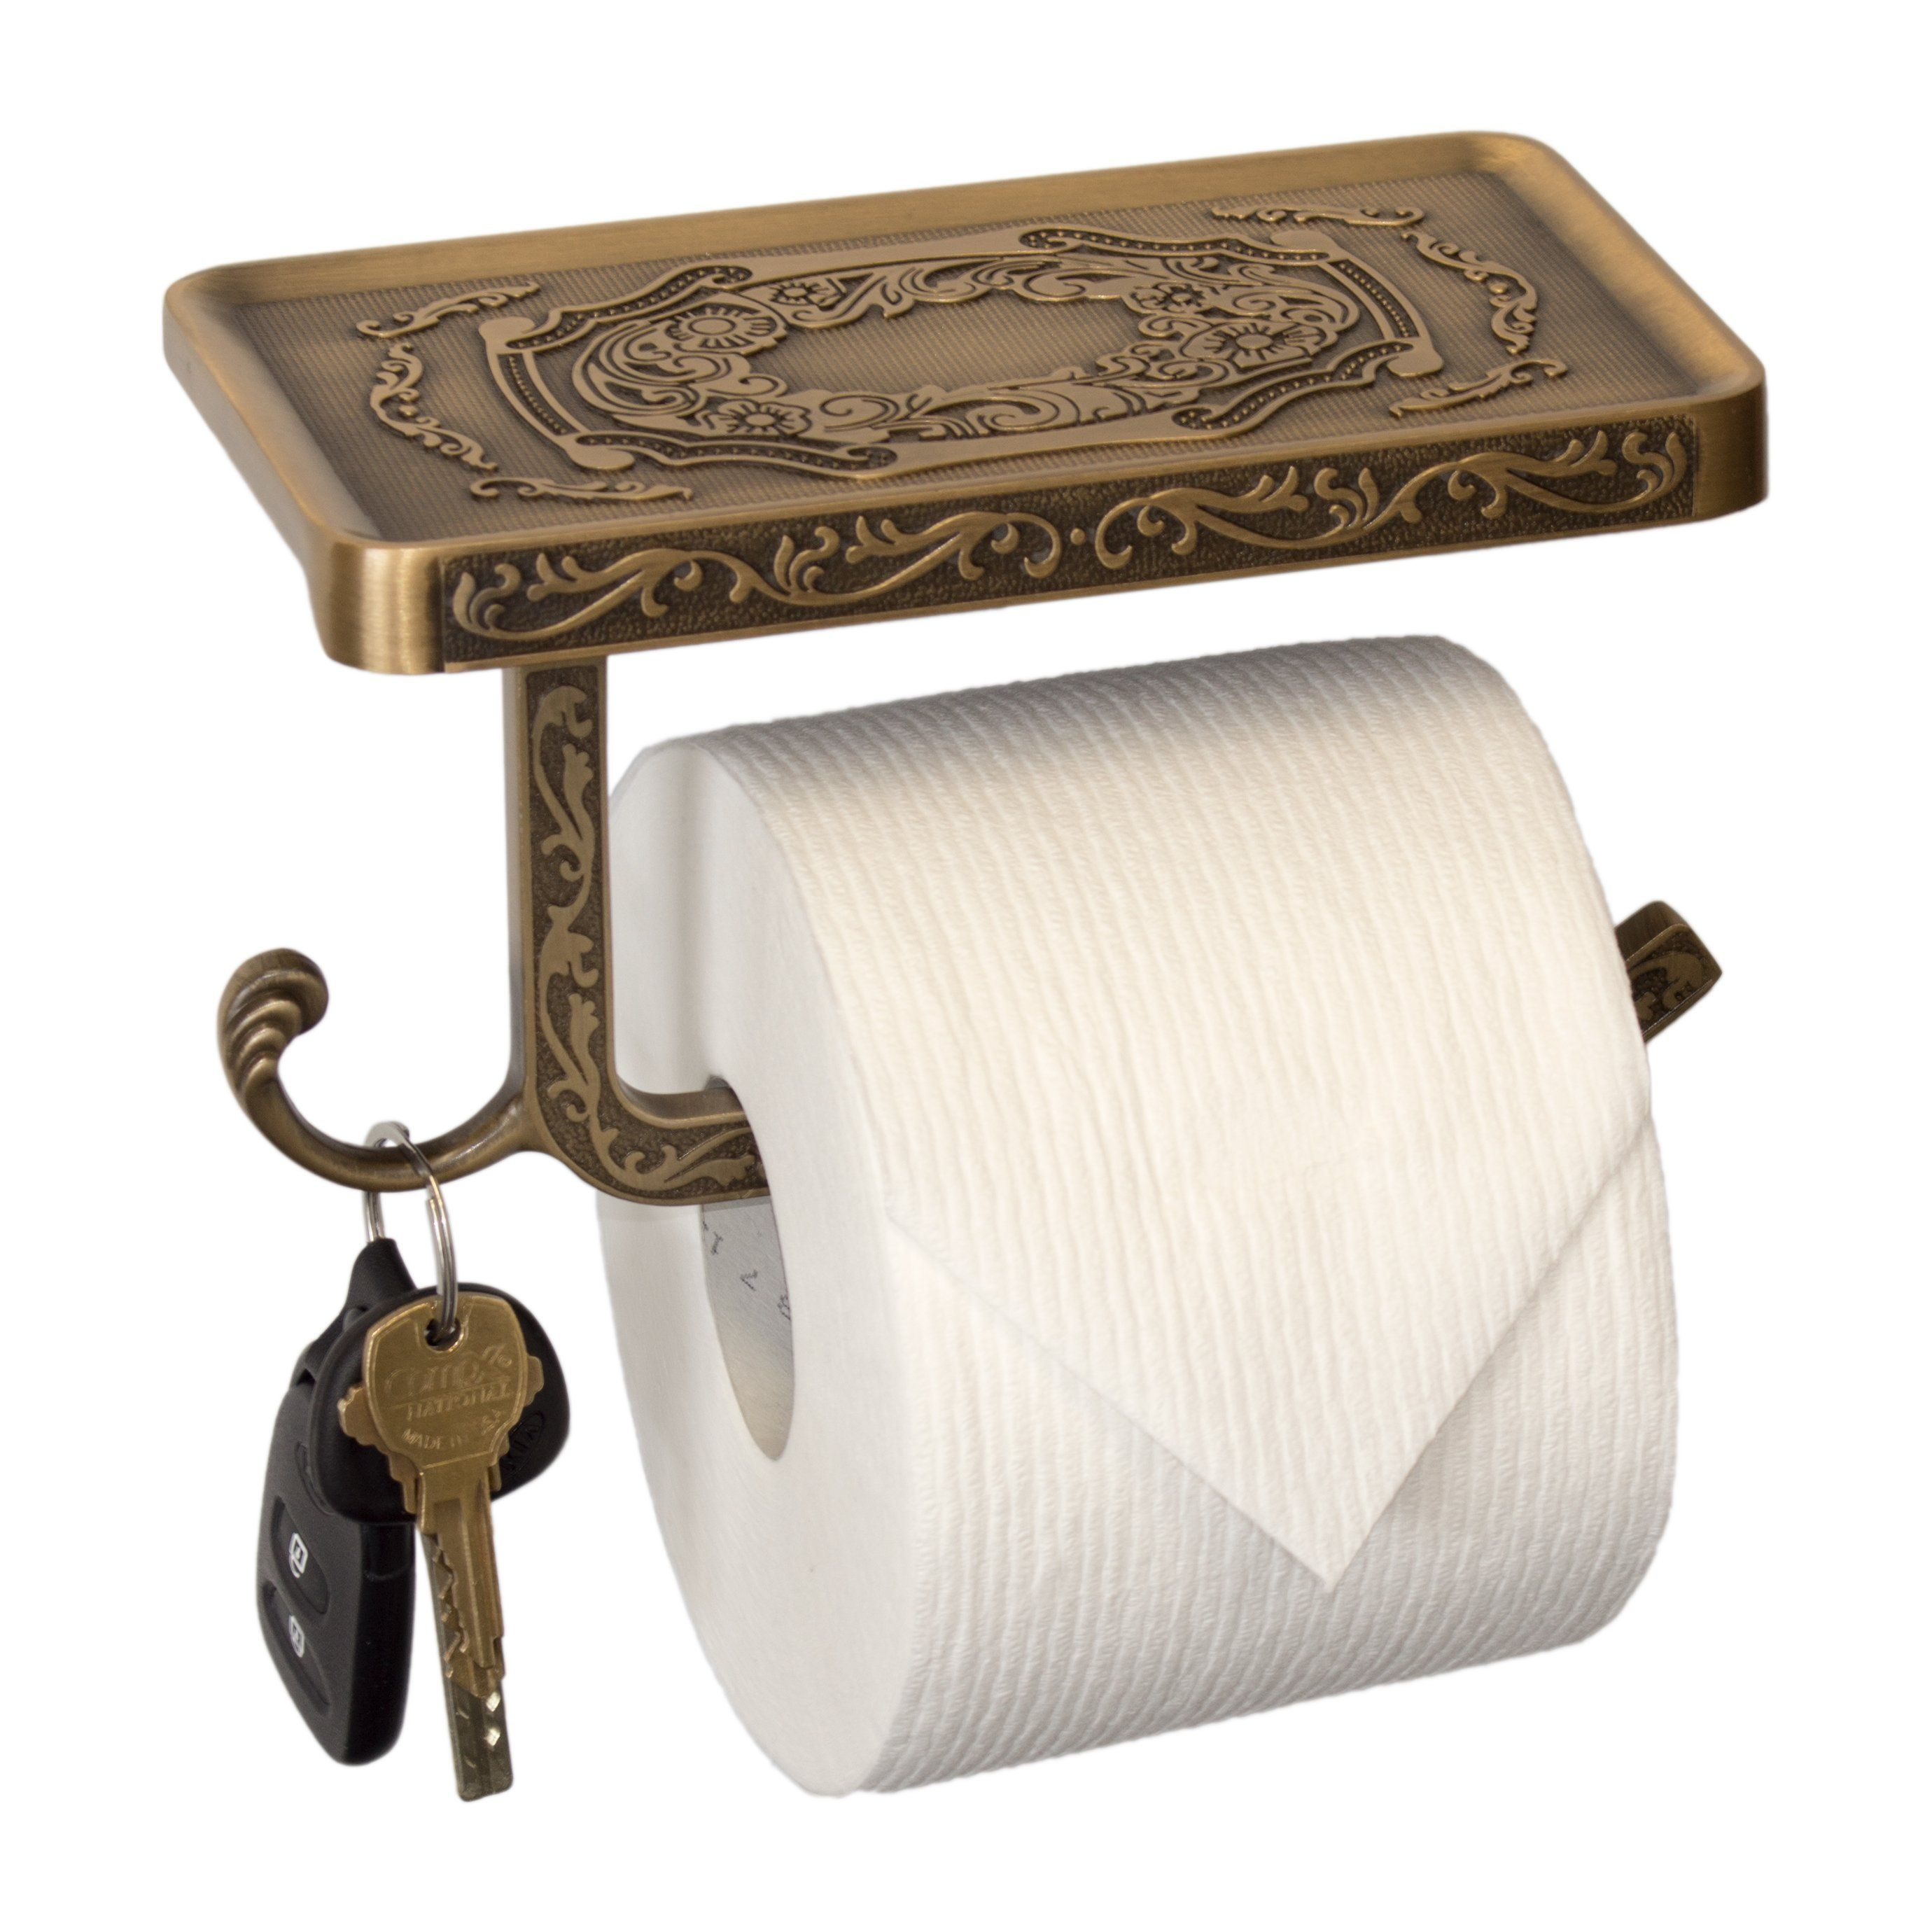 Toilet Paper Holder With Phone Shelf Vintage Style Bathroom Toilet Paper Holders Toilet Paper Holder Toilet Paper